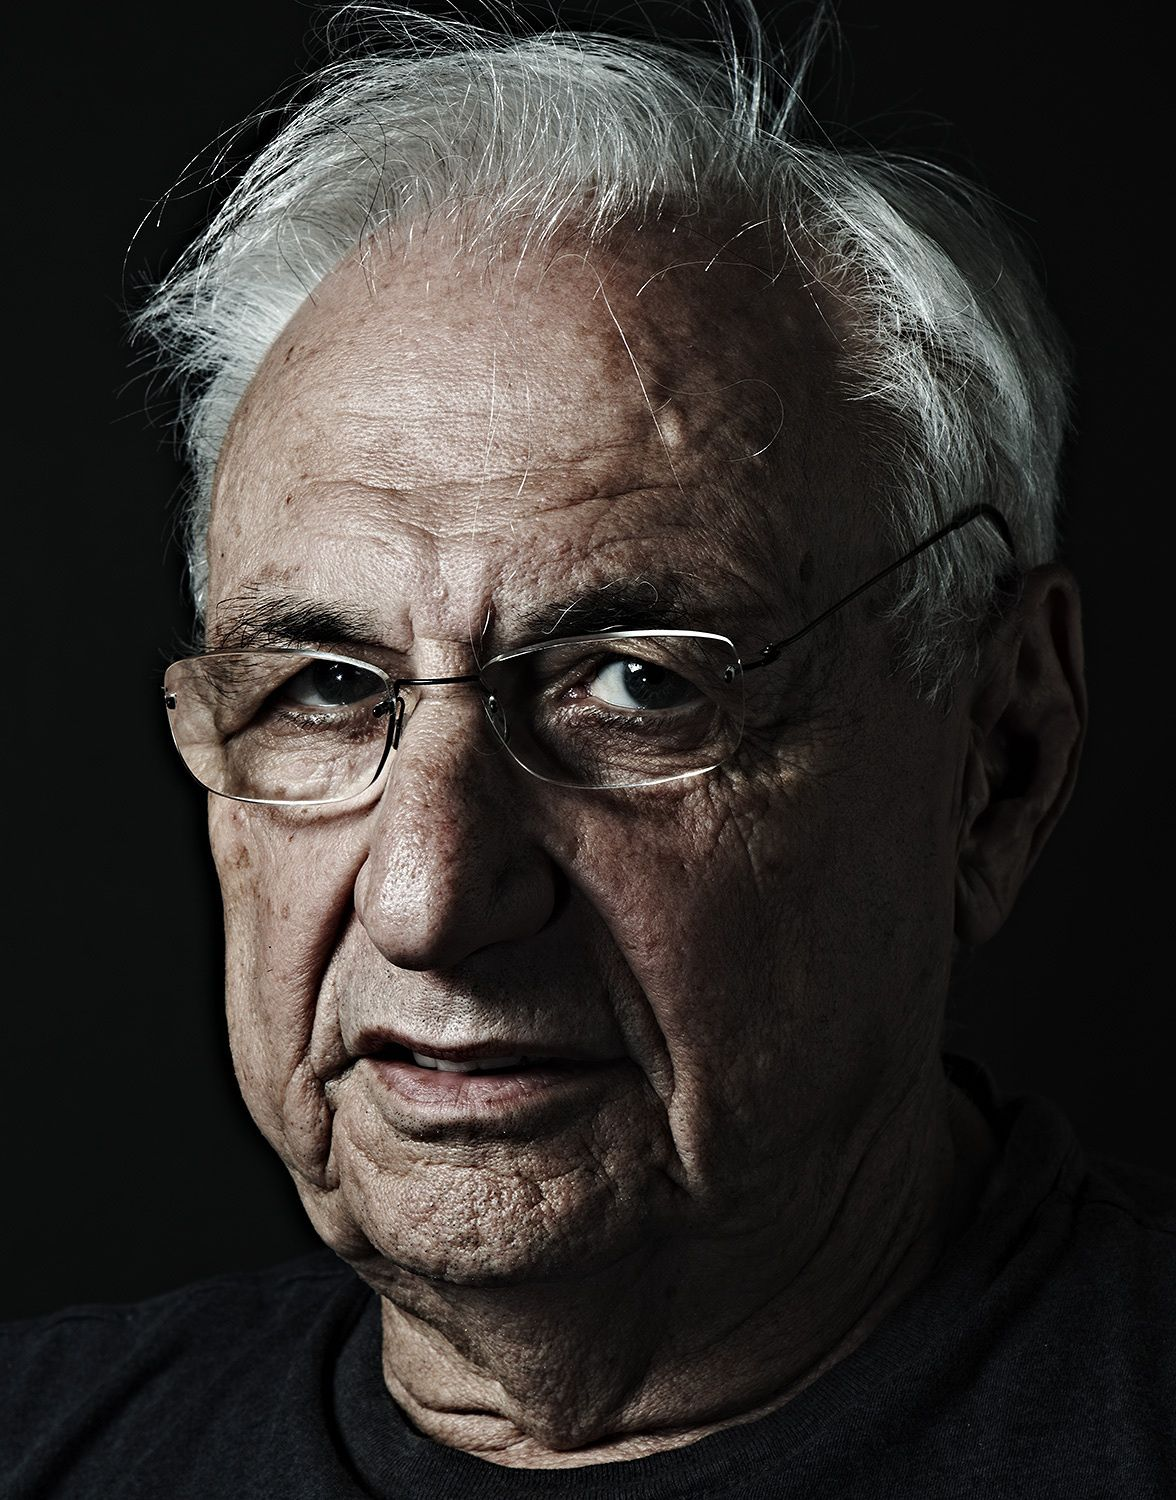 frank owen gehry portrait young or early google search. Black Bedroom Furniture Sets. Home Design Ideas